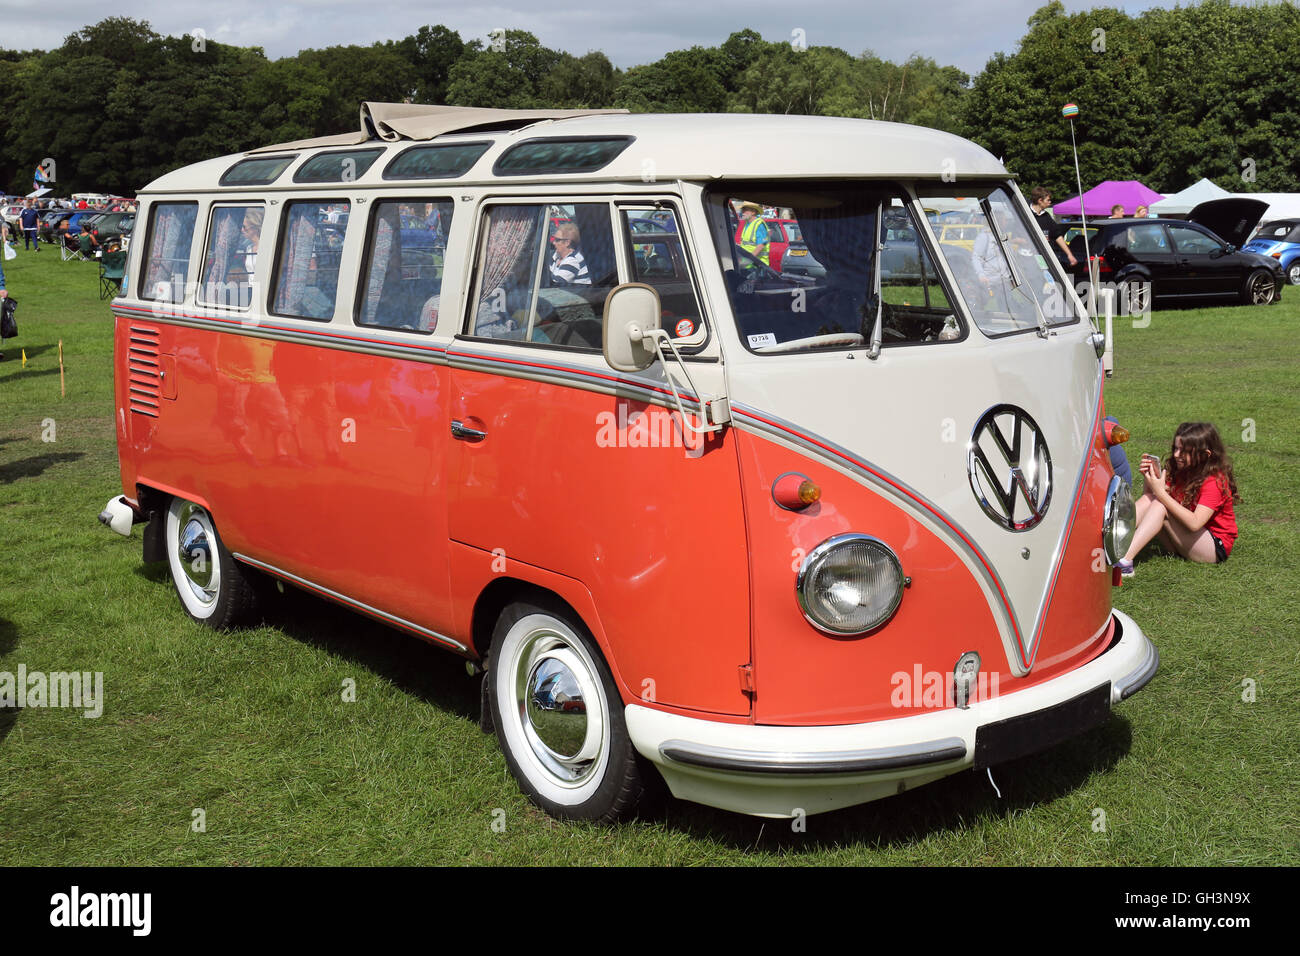 Volkswagen Samba bus  at Tatton park Vw show - Stock Image